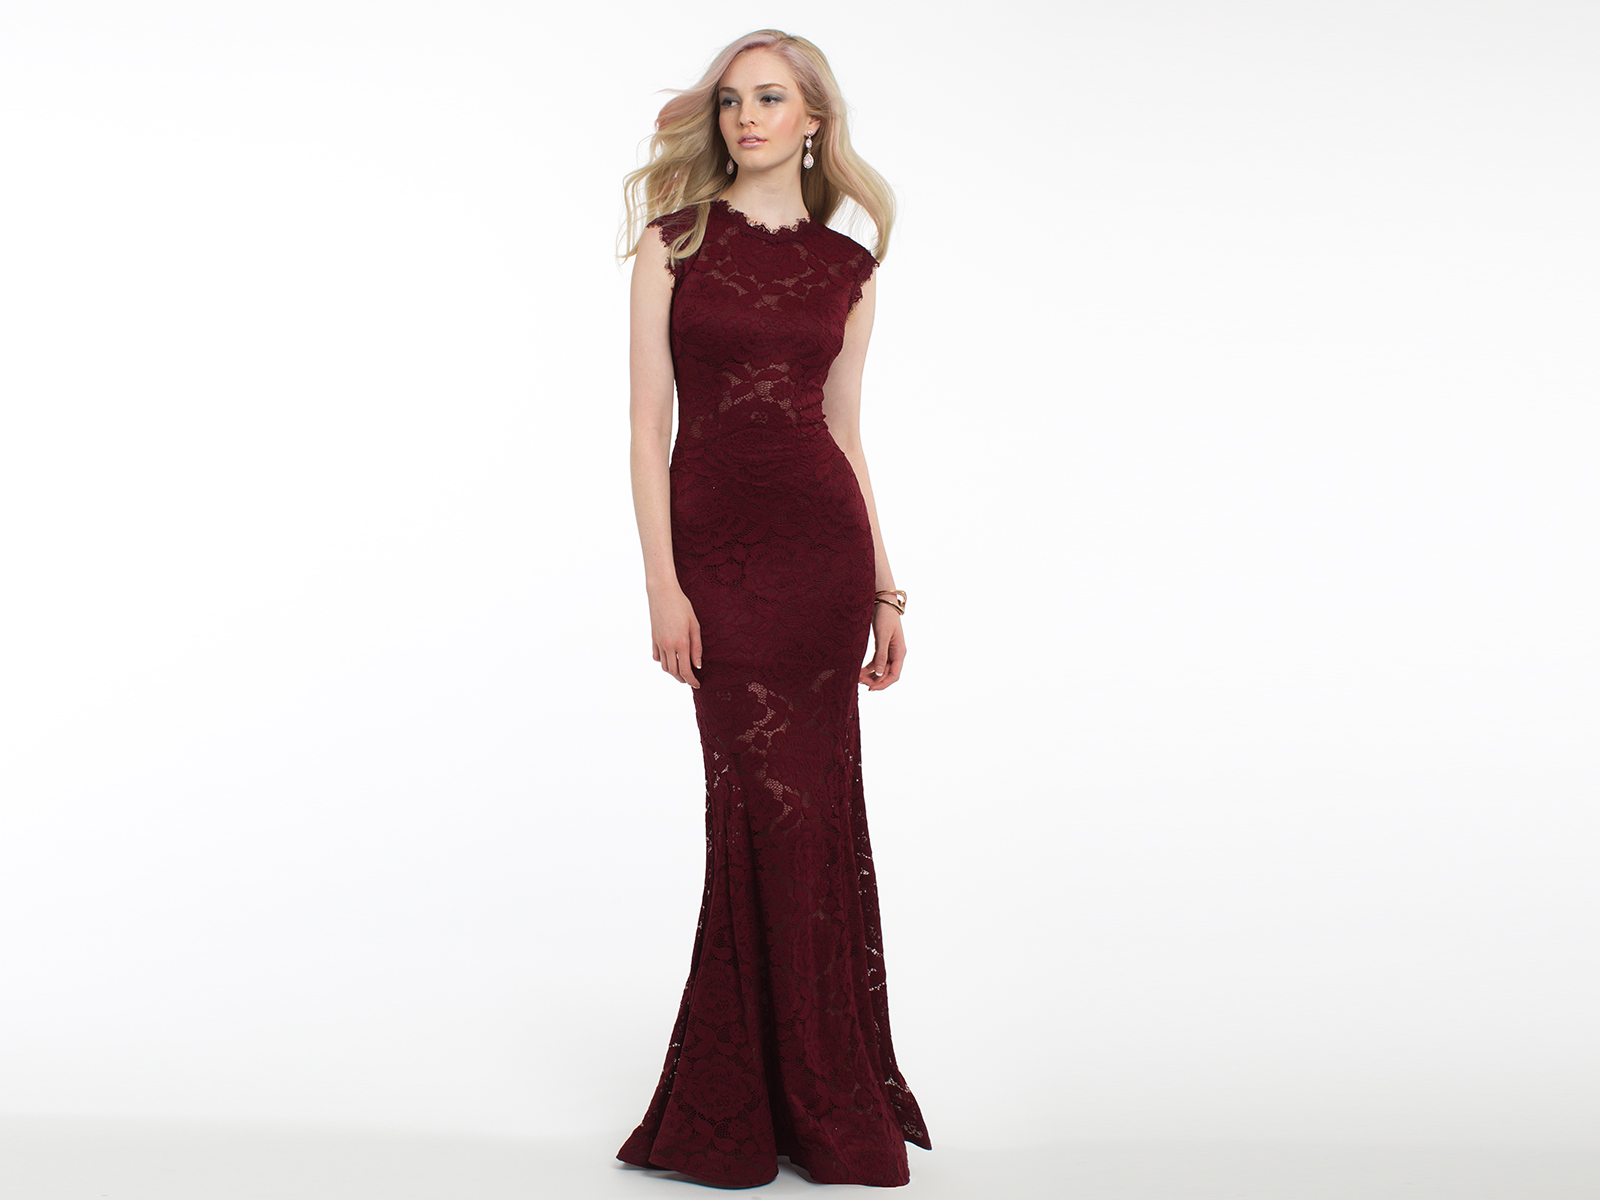 Allover Lace Bridesmaid Dress with Illusion Waist